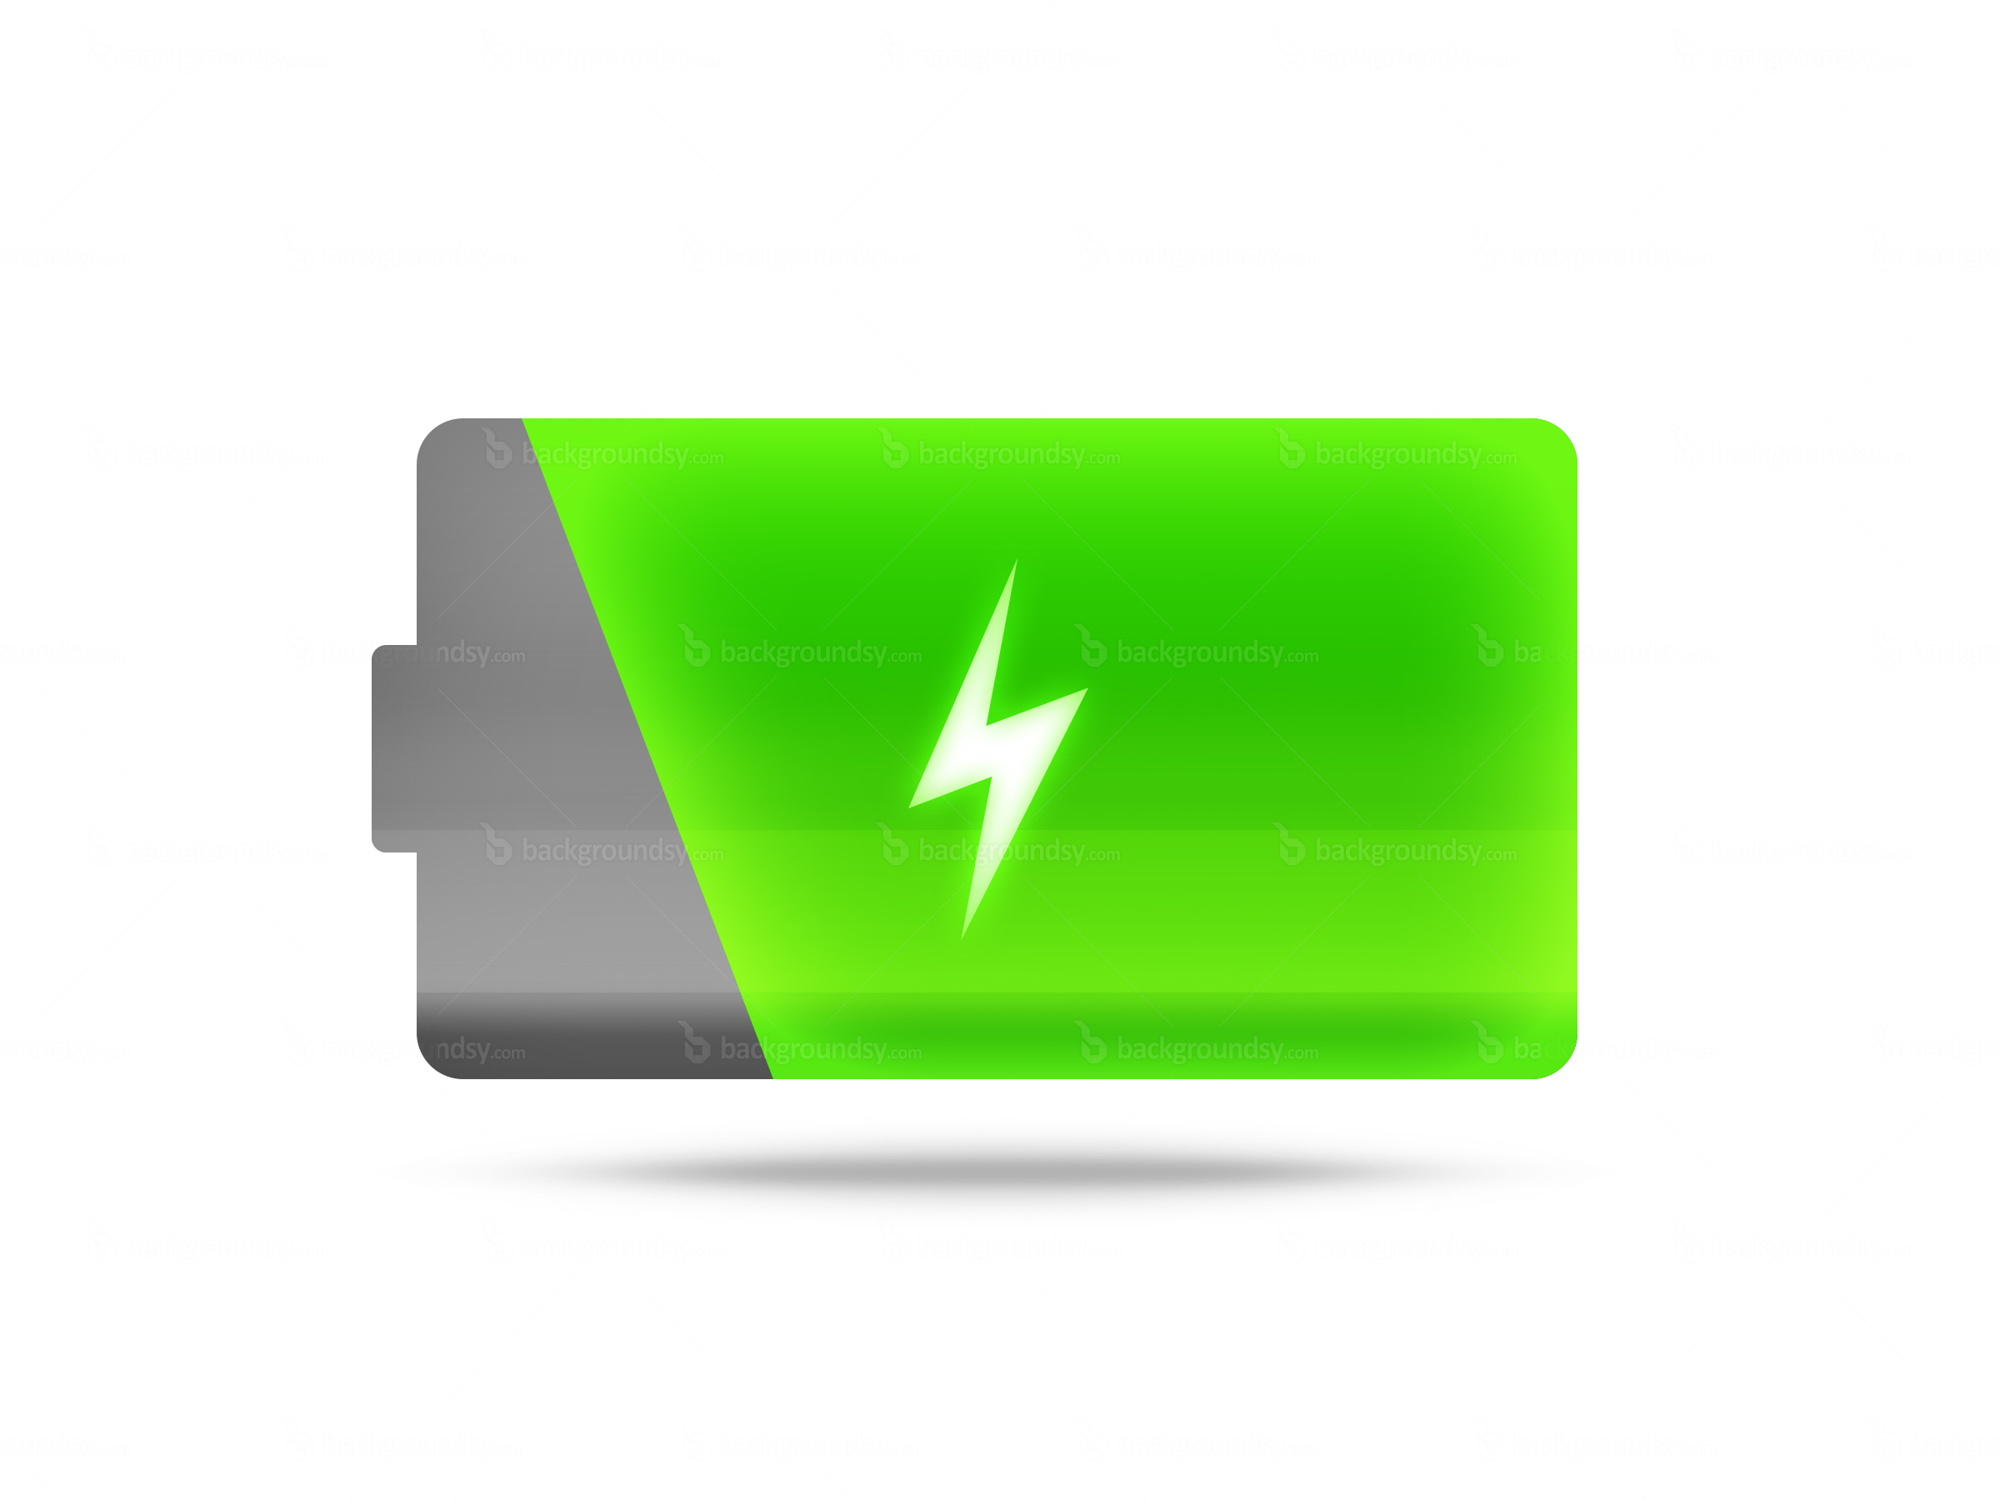 Recycle Iphone Battery